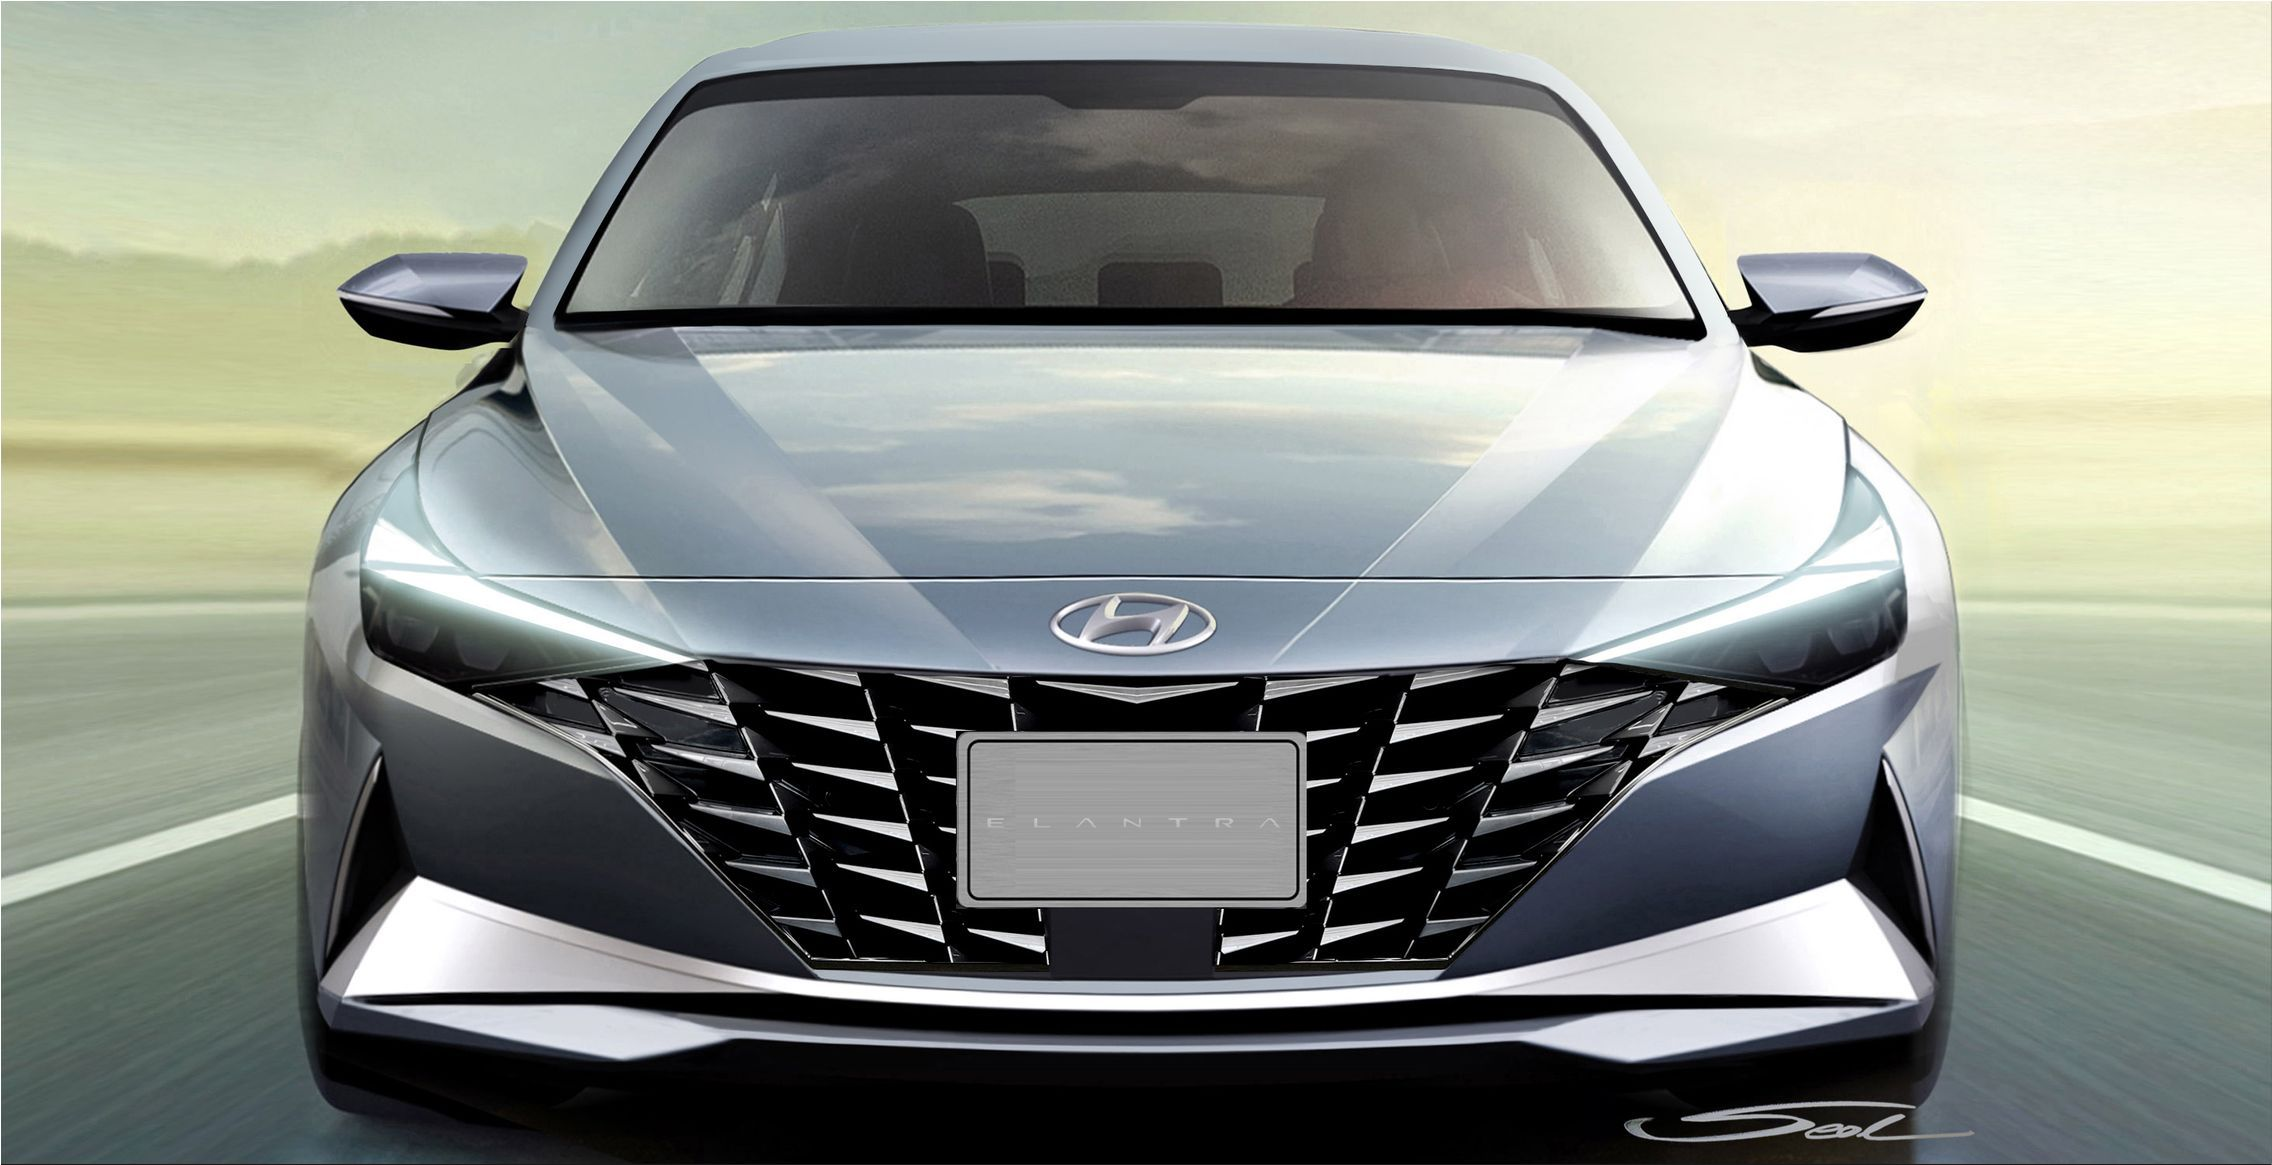 This very morning, Hyundai introduced the new Elantra and Elantra Hybrid in a special broa...